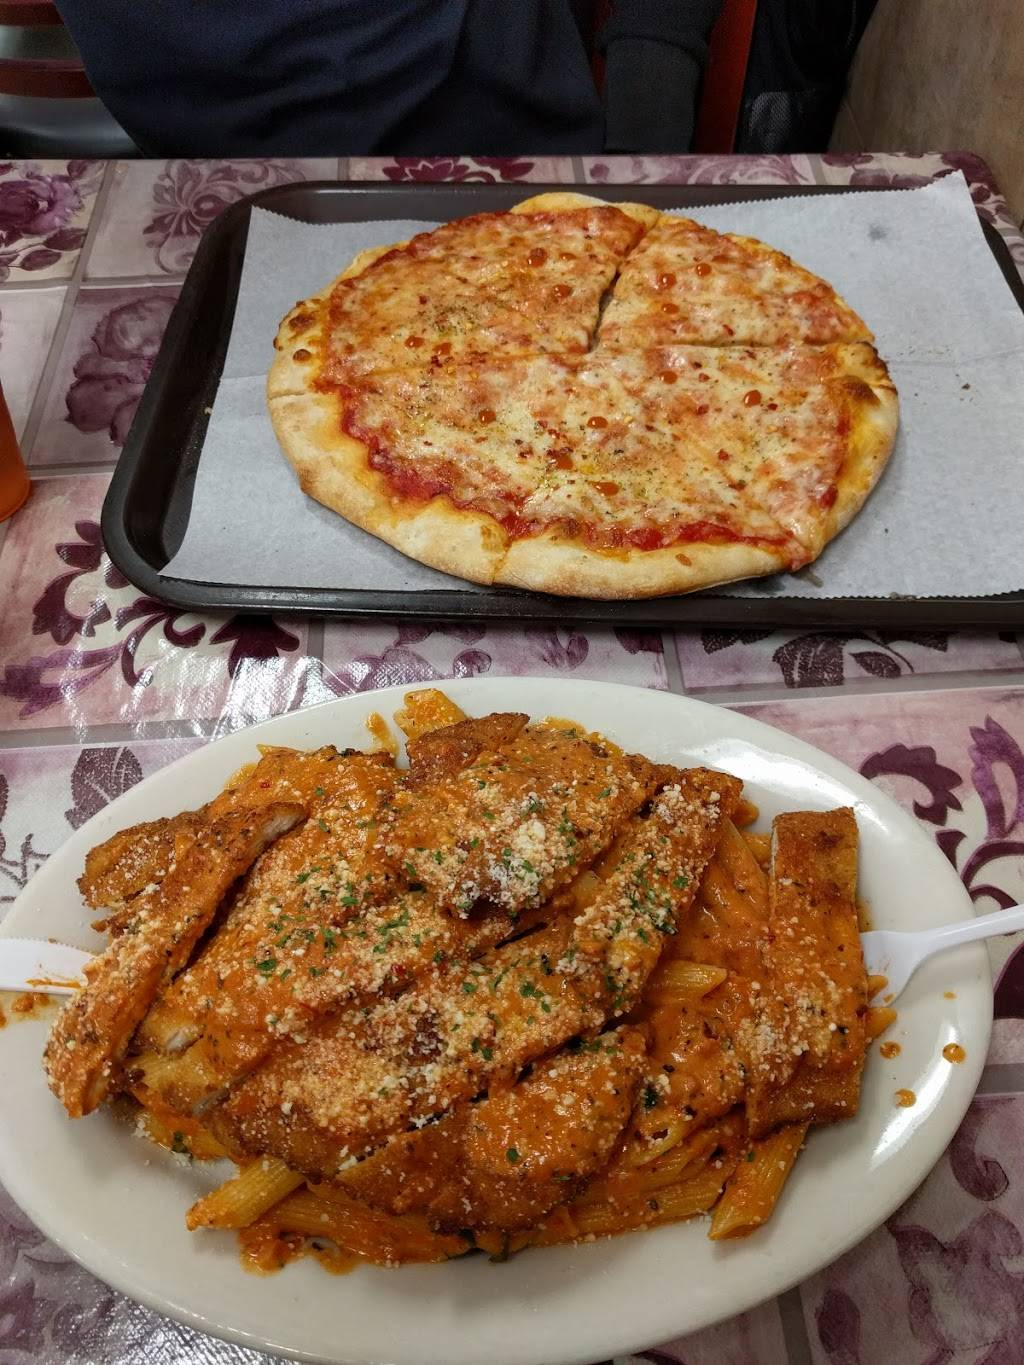 Blvd Pizzeria   meal delivery   89-04 Queens Blvd, Queens, NY 11373, USA   7182055097 OR +1 718-205-5097